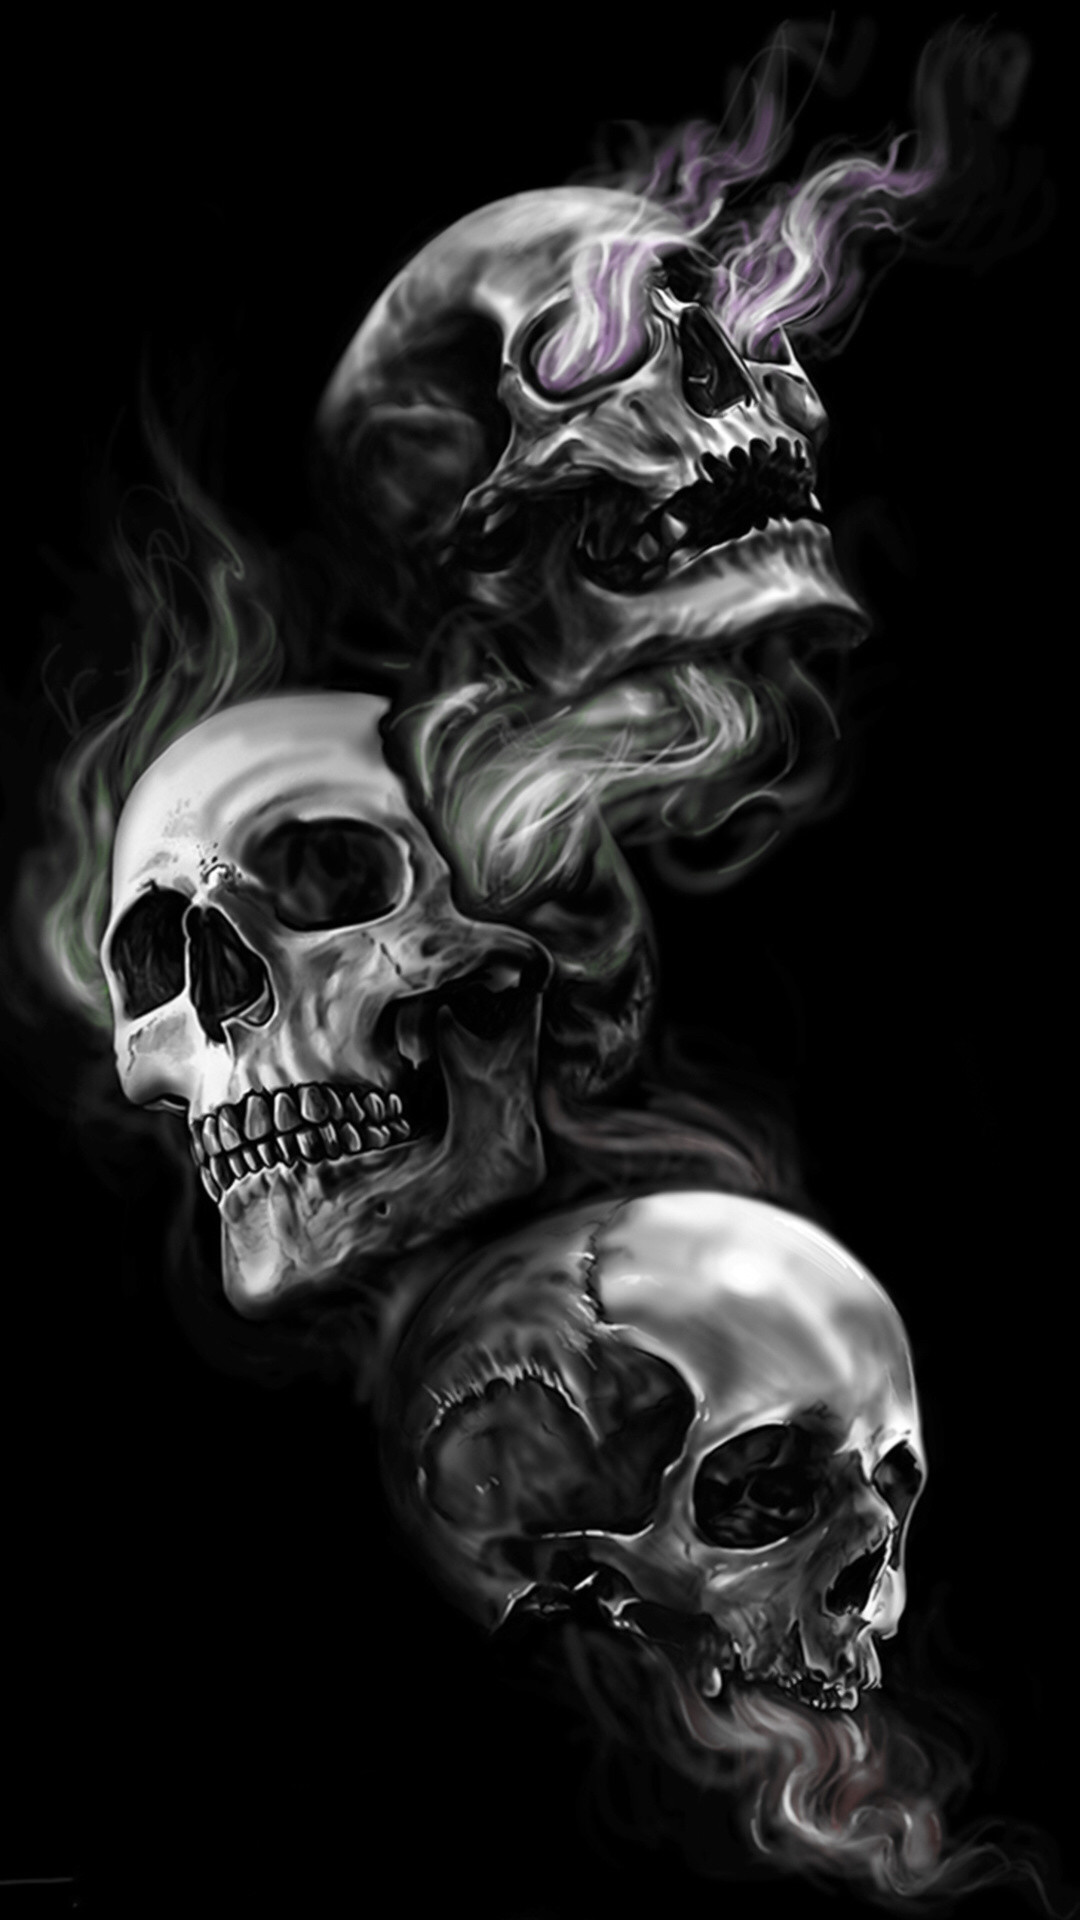 Wallpapers Of Skull Posted By Zoey Simpson